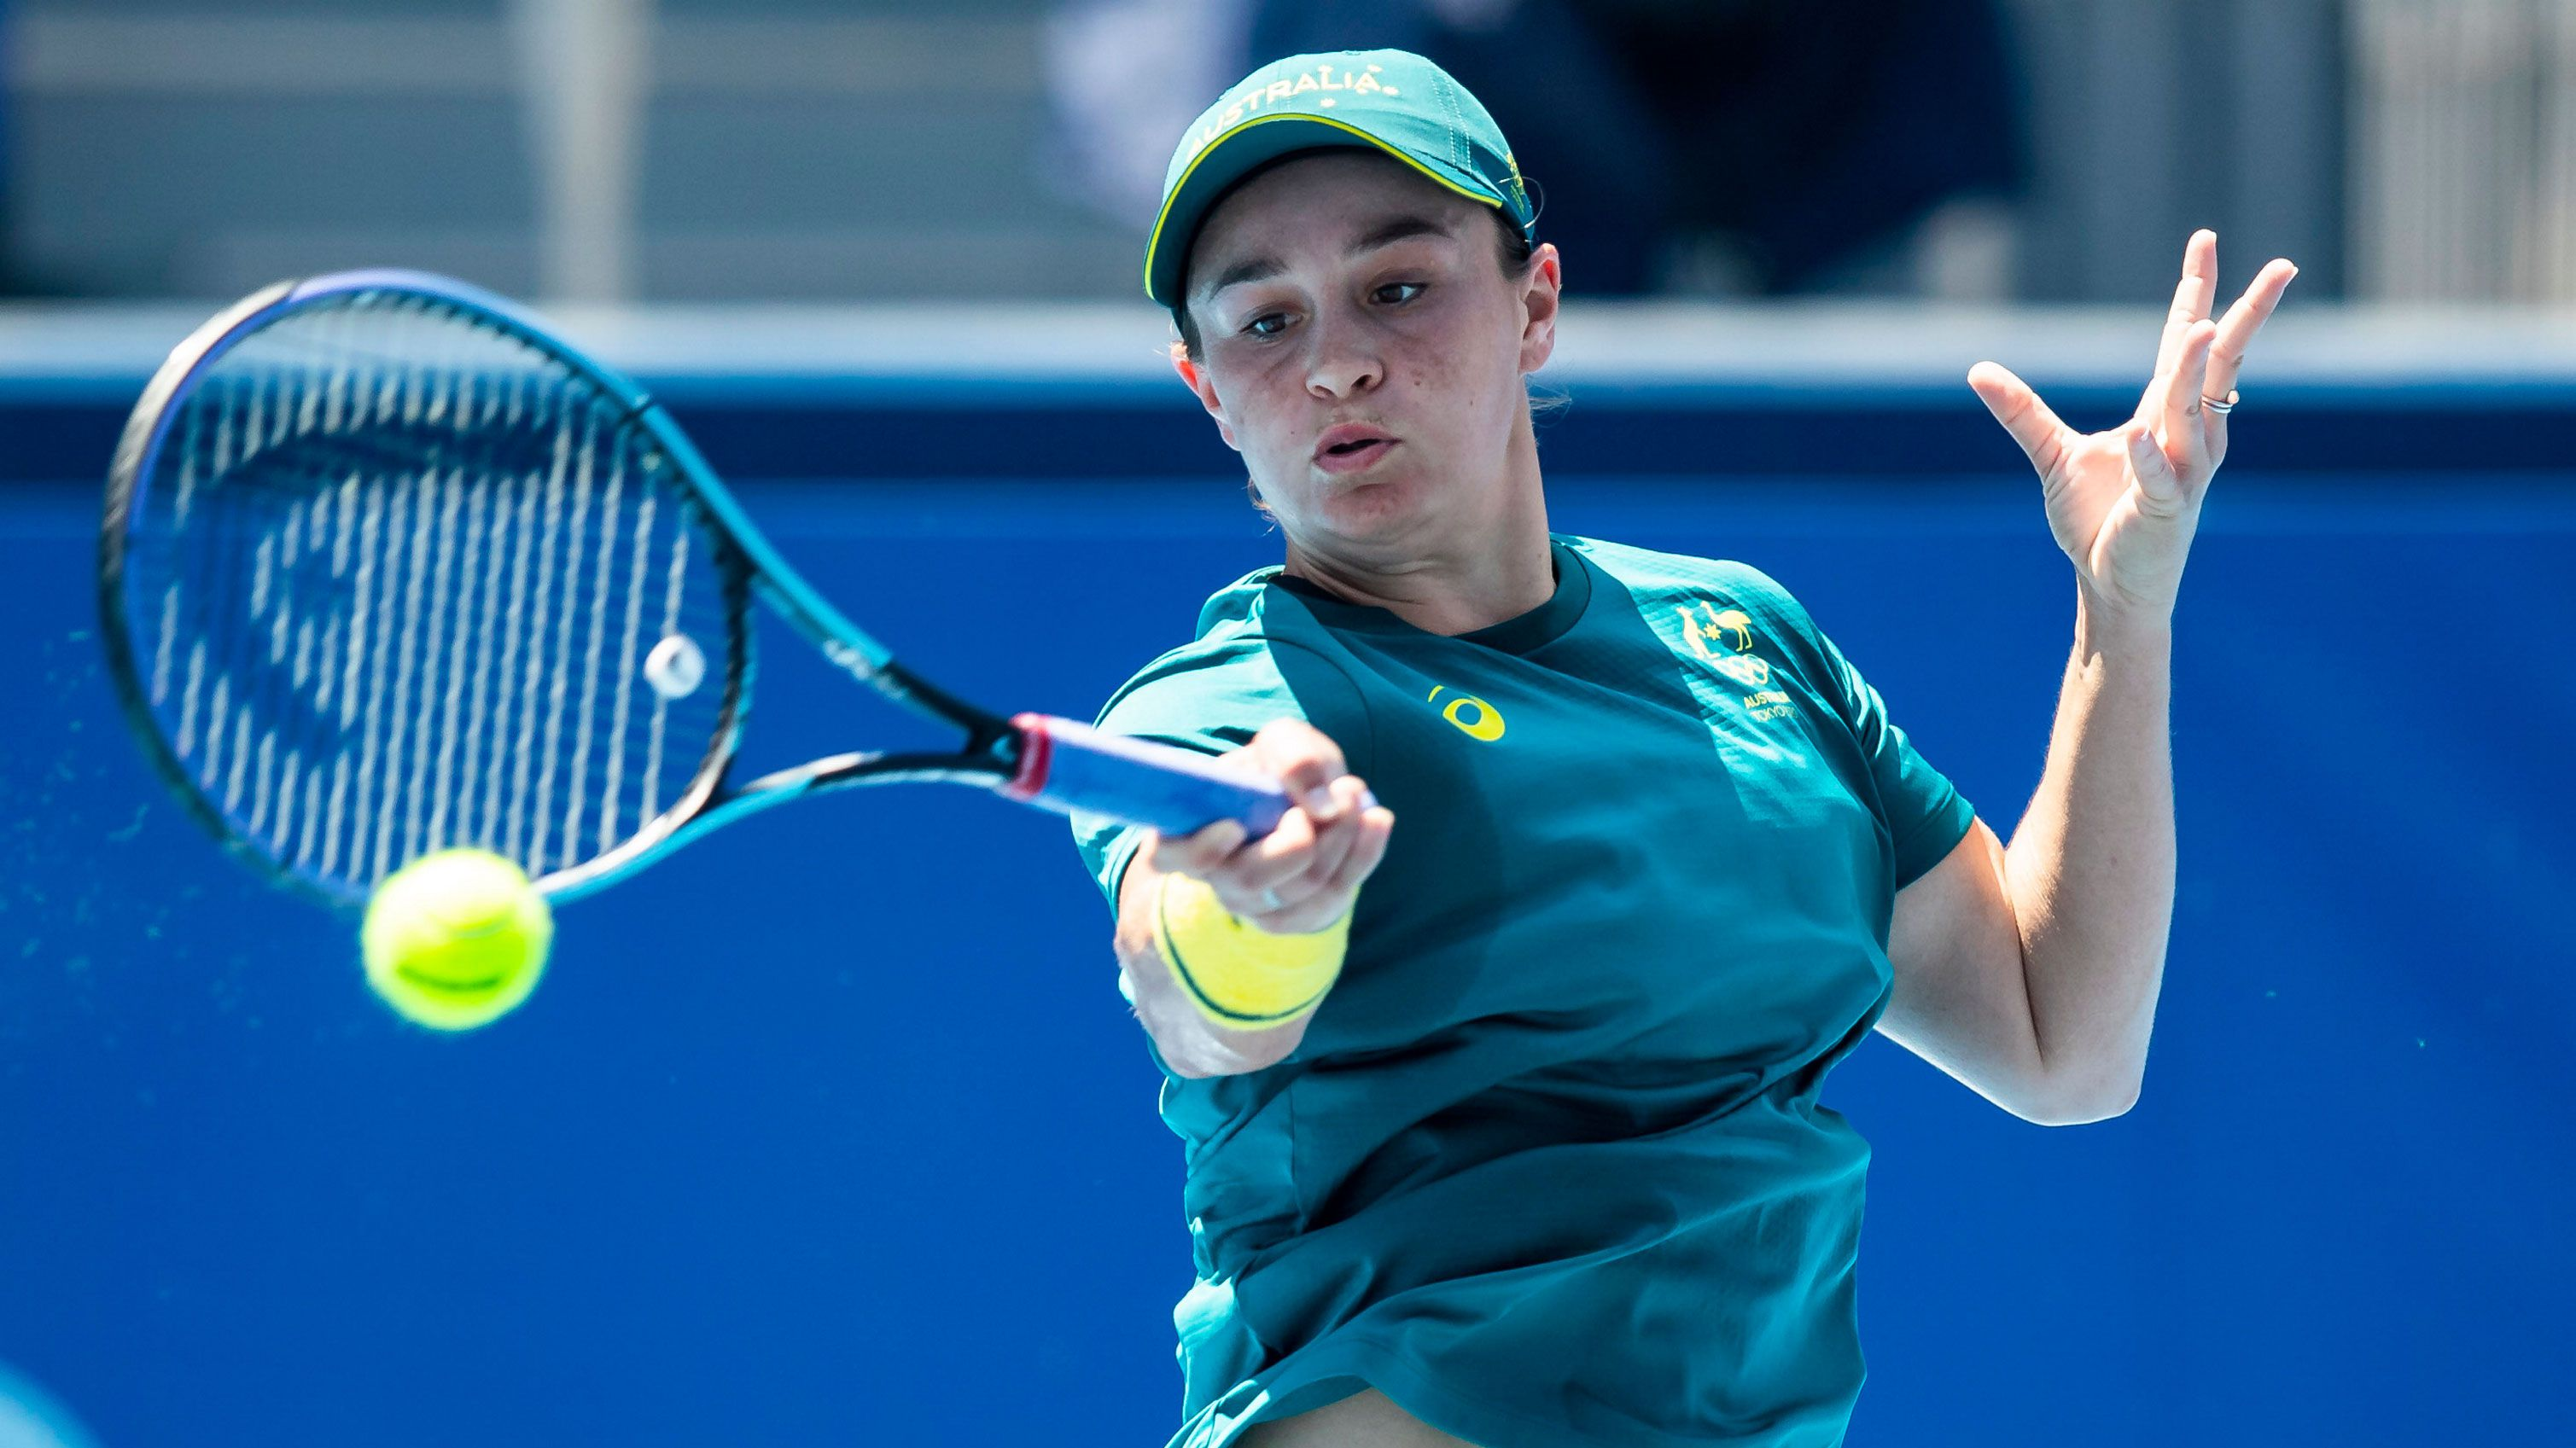 Ash Barty hits a forehand in Tokyo.